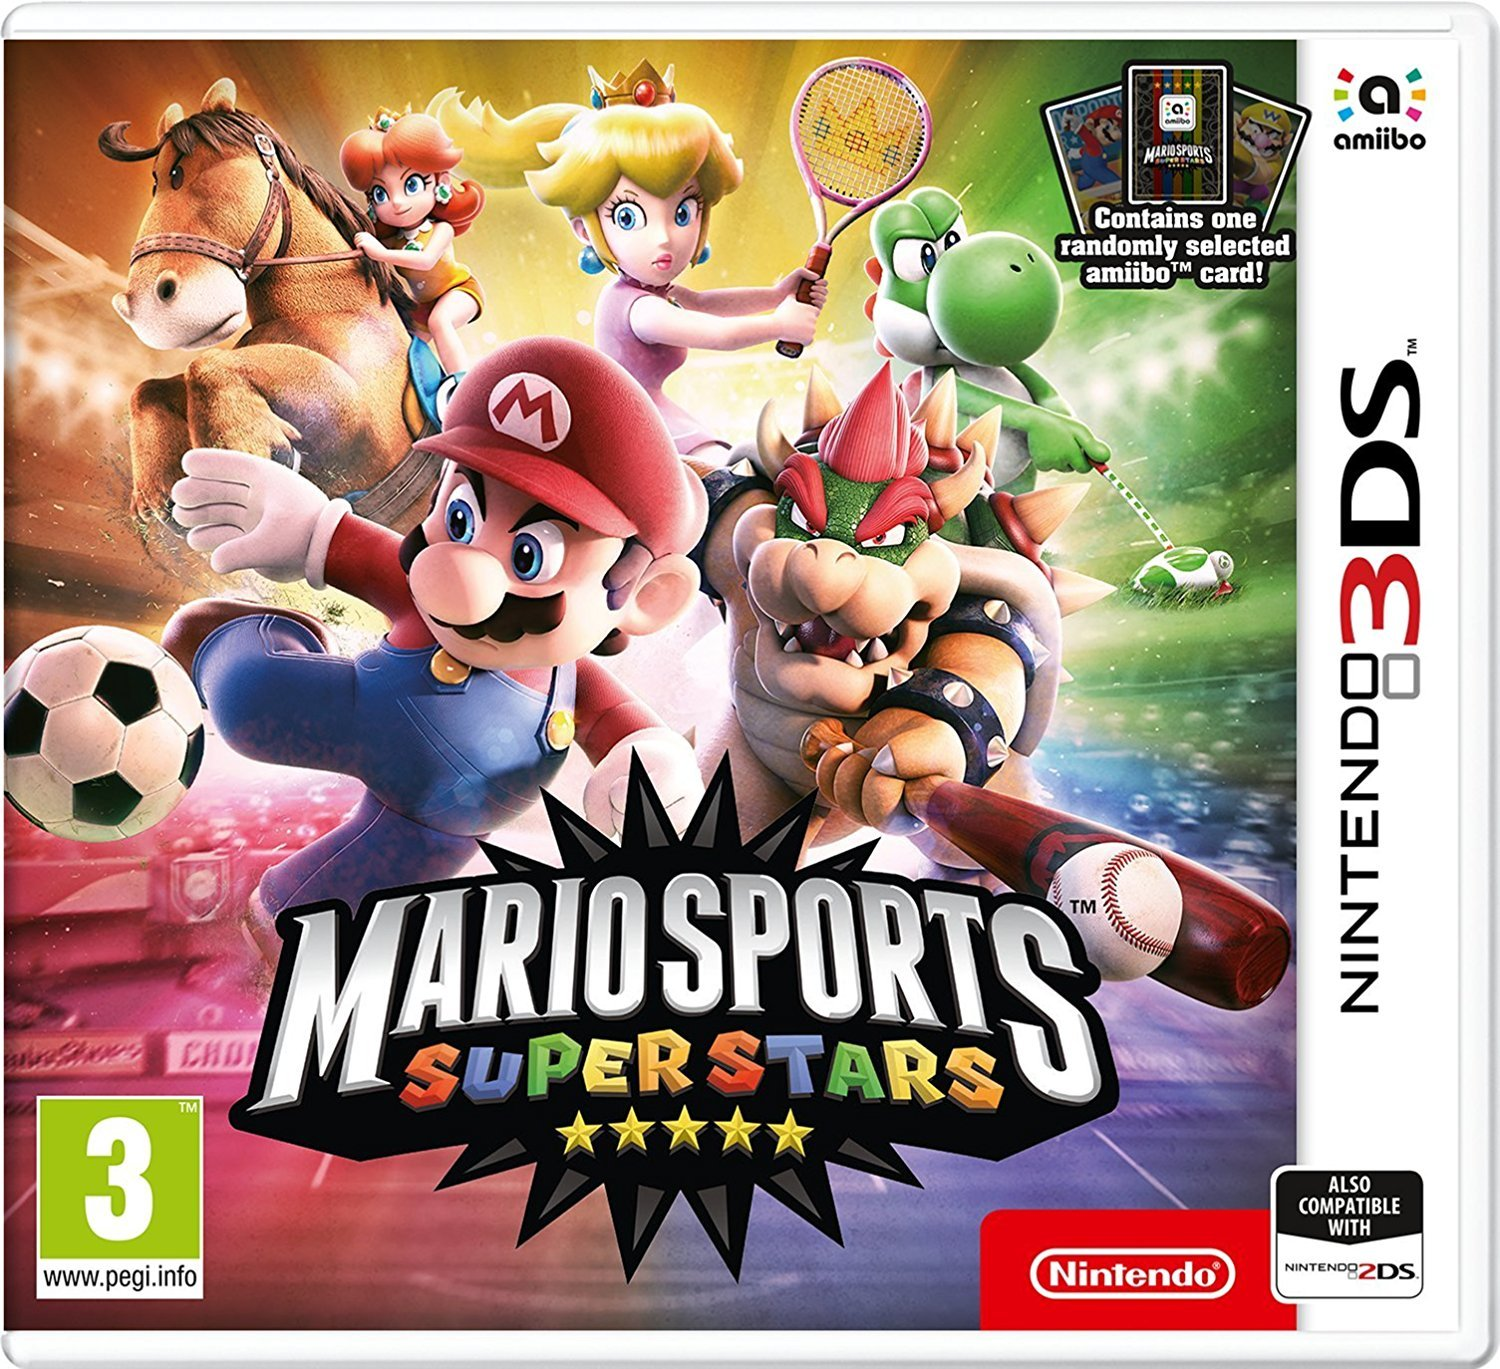 Mario Sports Superstars for Nintendo 3DS image